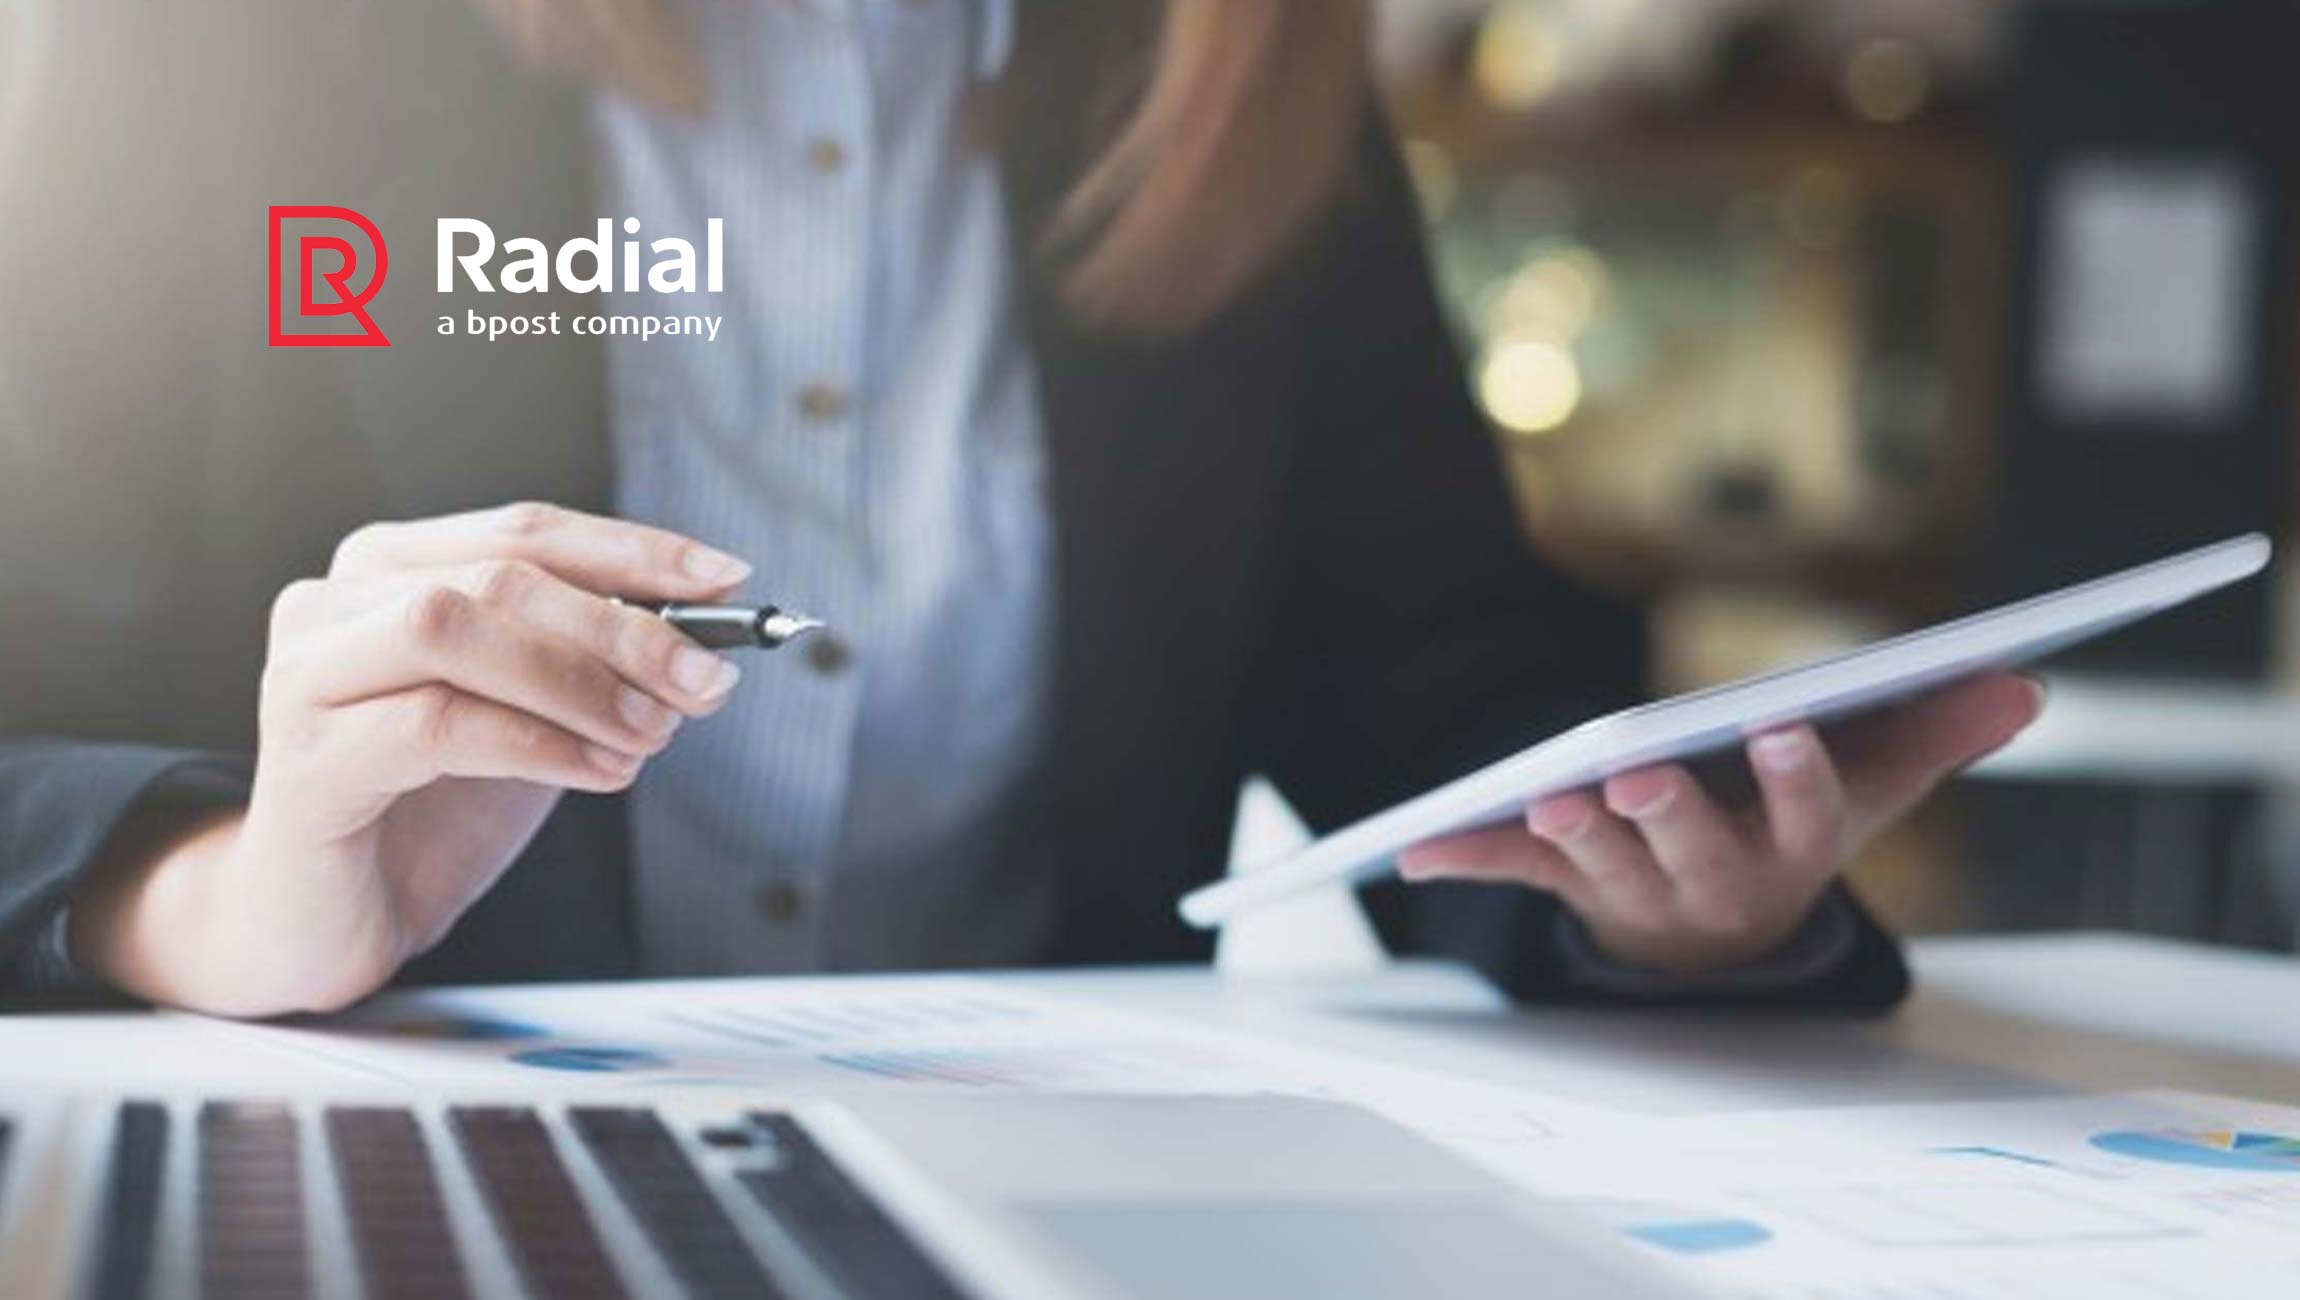 Radial Announces Radial Order Management 20.2 Release to Drive Deeper Cost Savings and Efficiency Gains